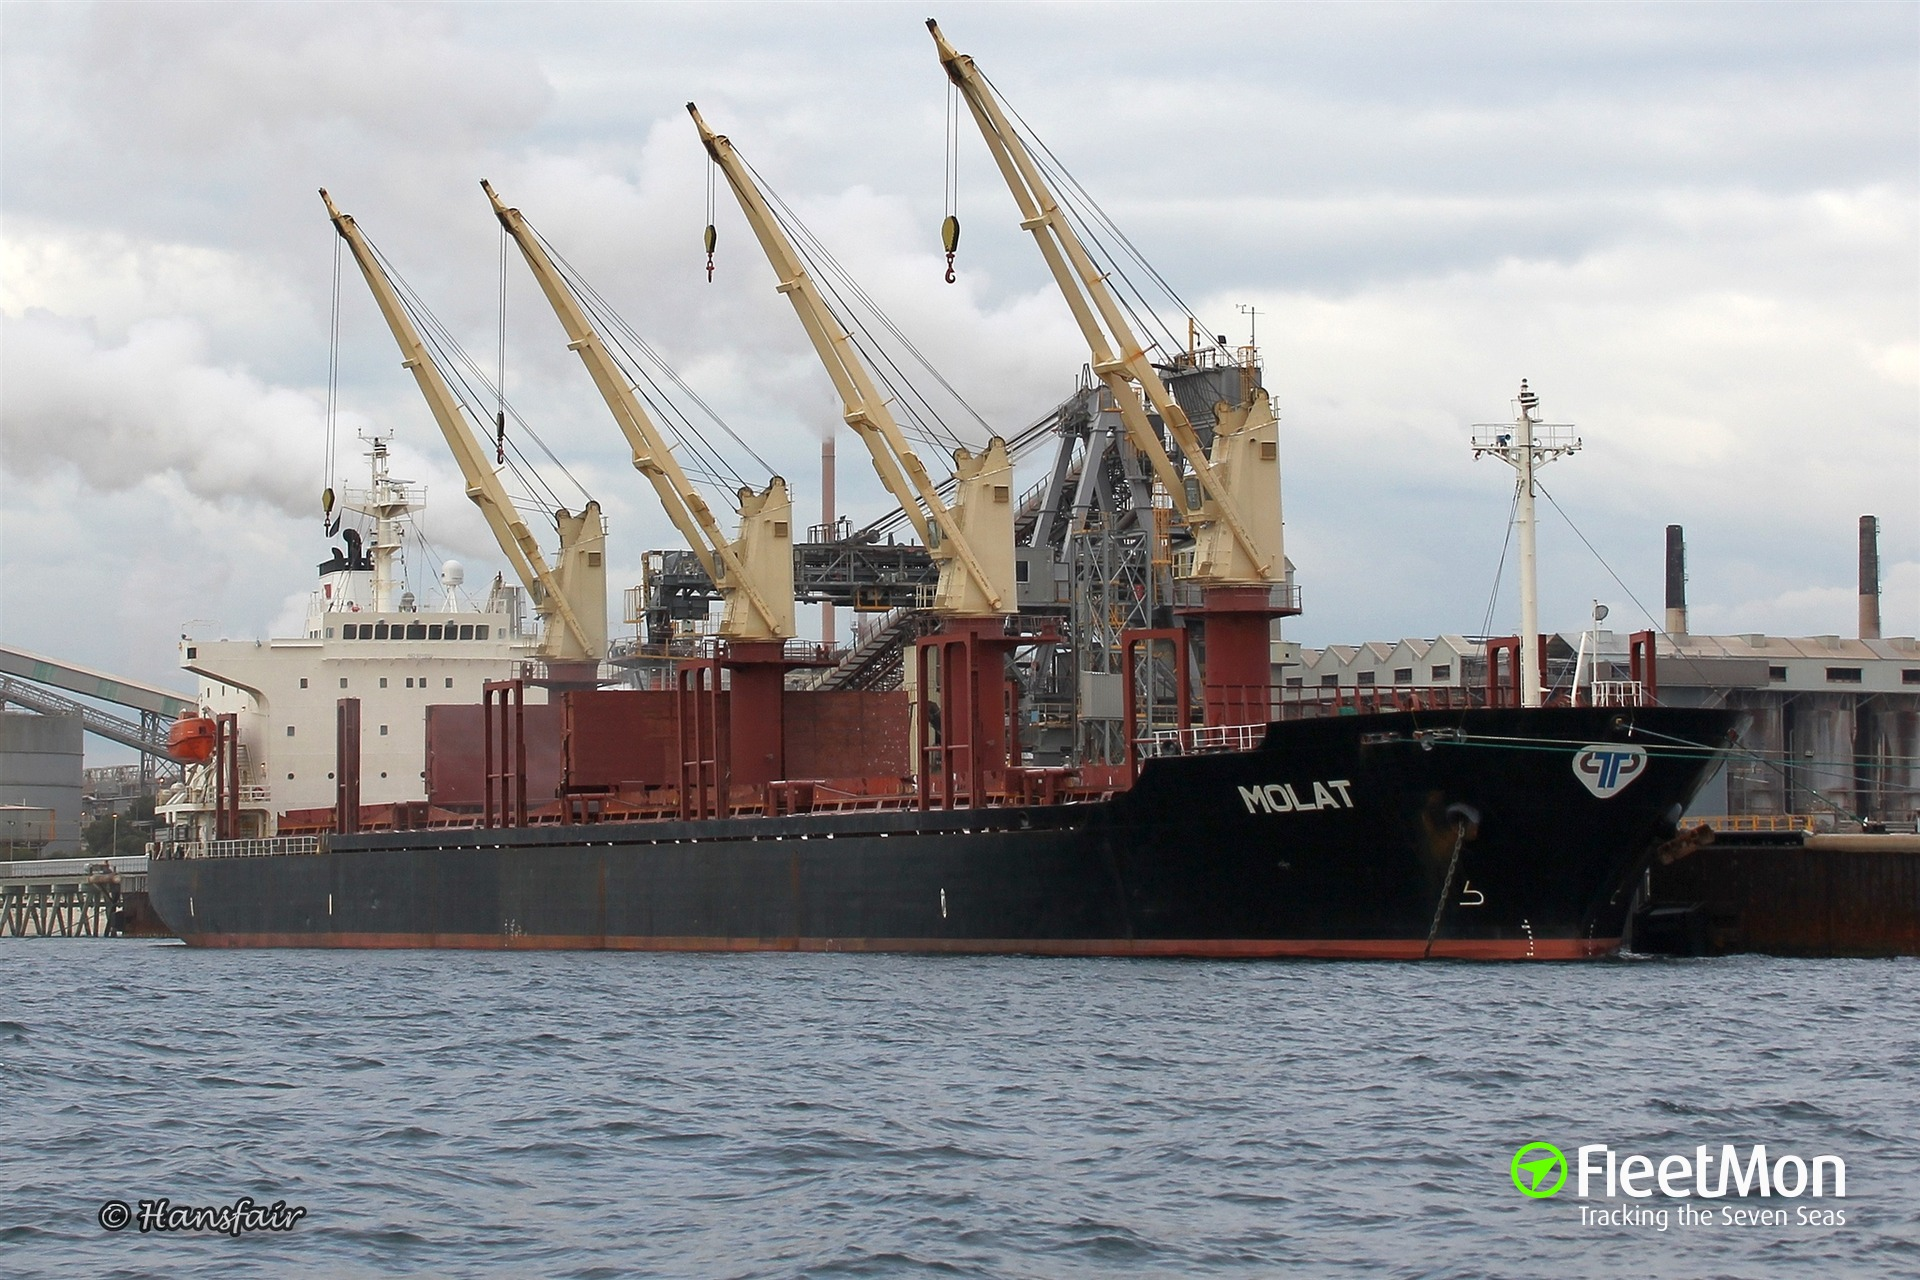 Bulk carrier MOLAT stranded off Tauranga since Sep 6